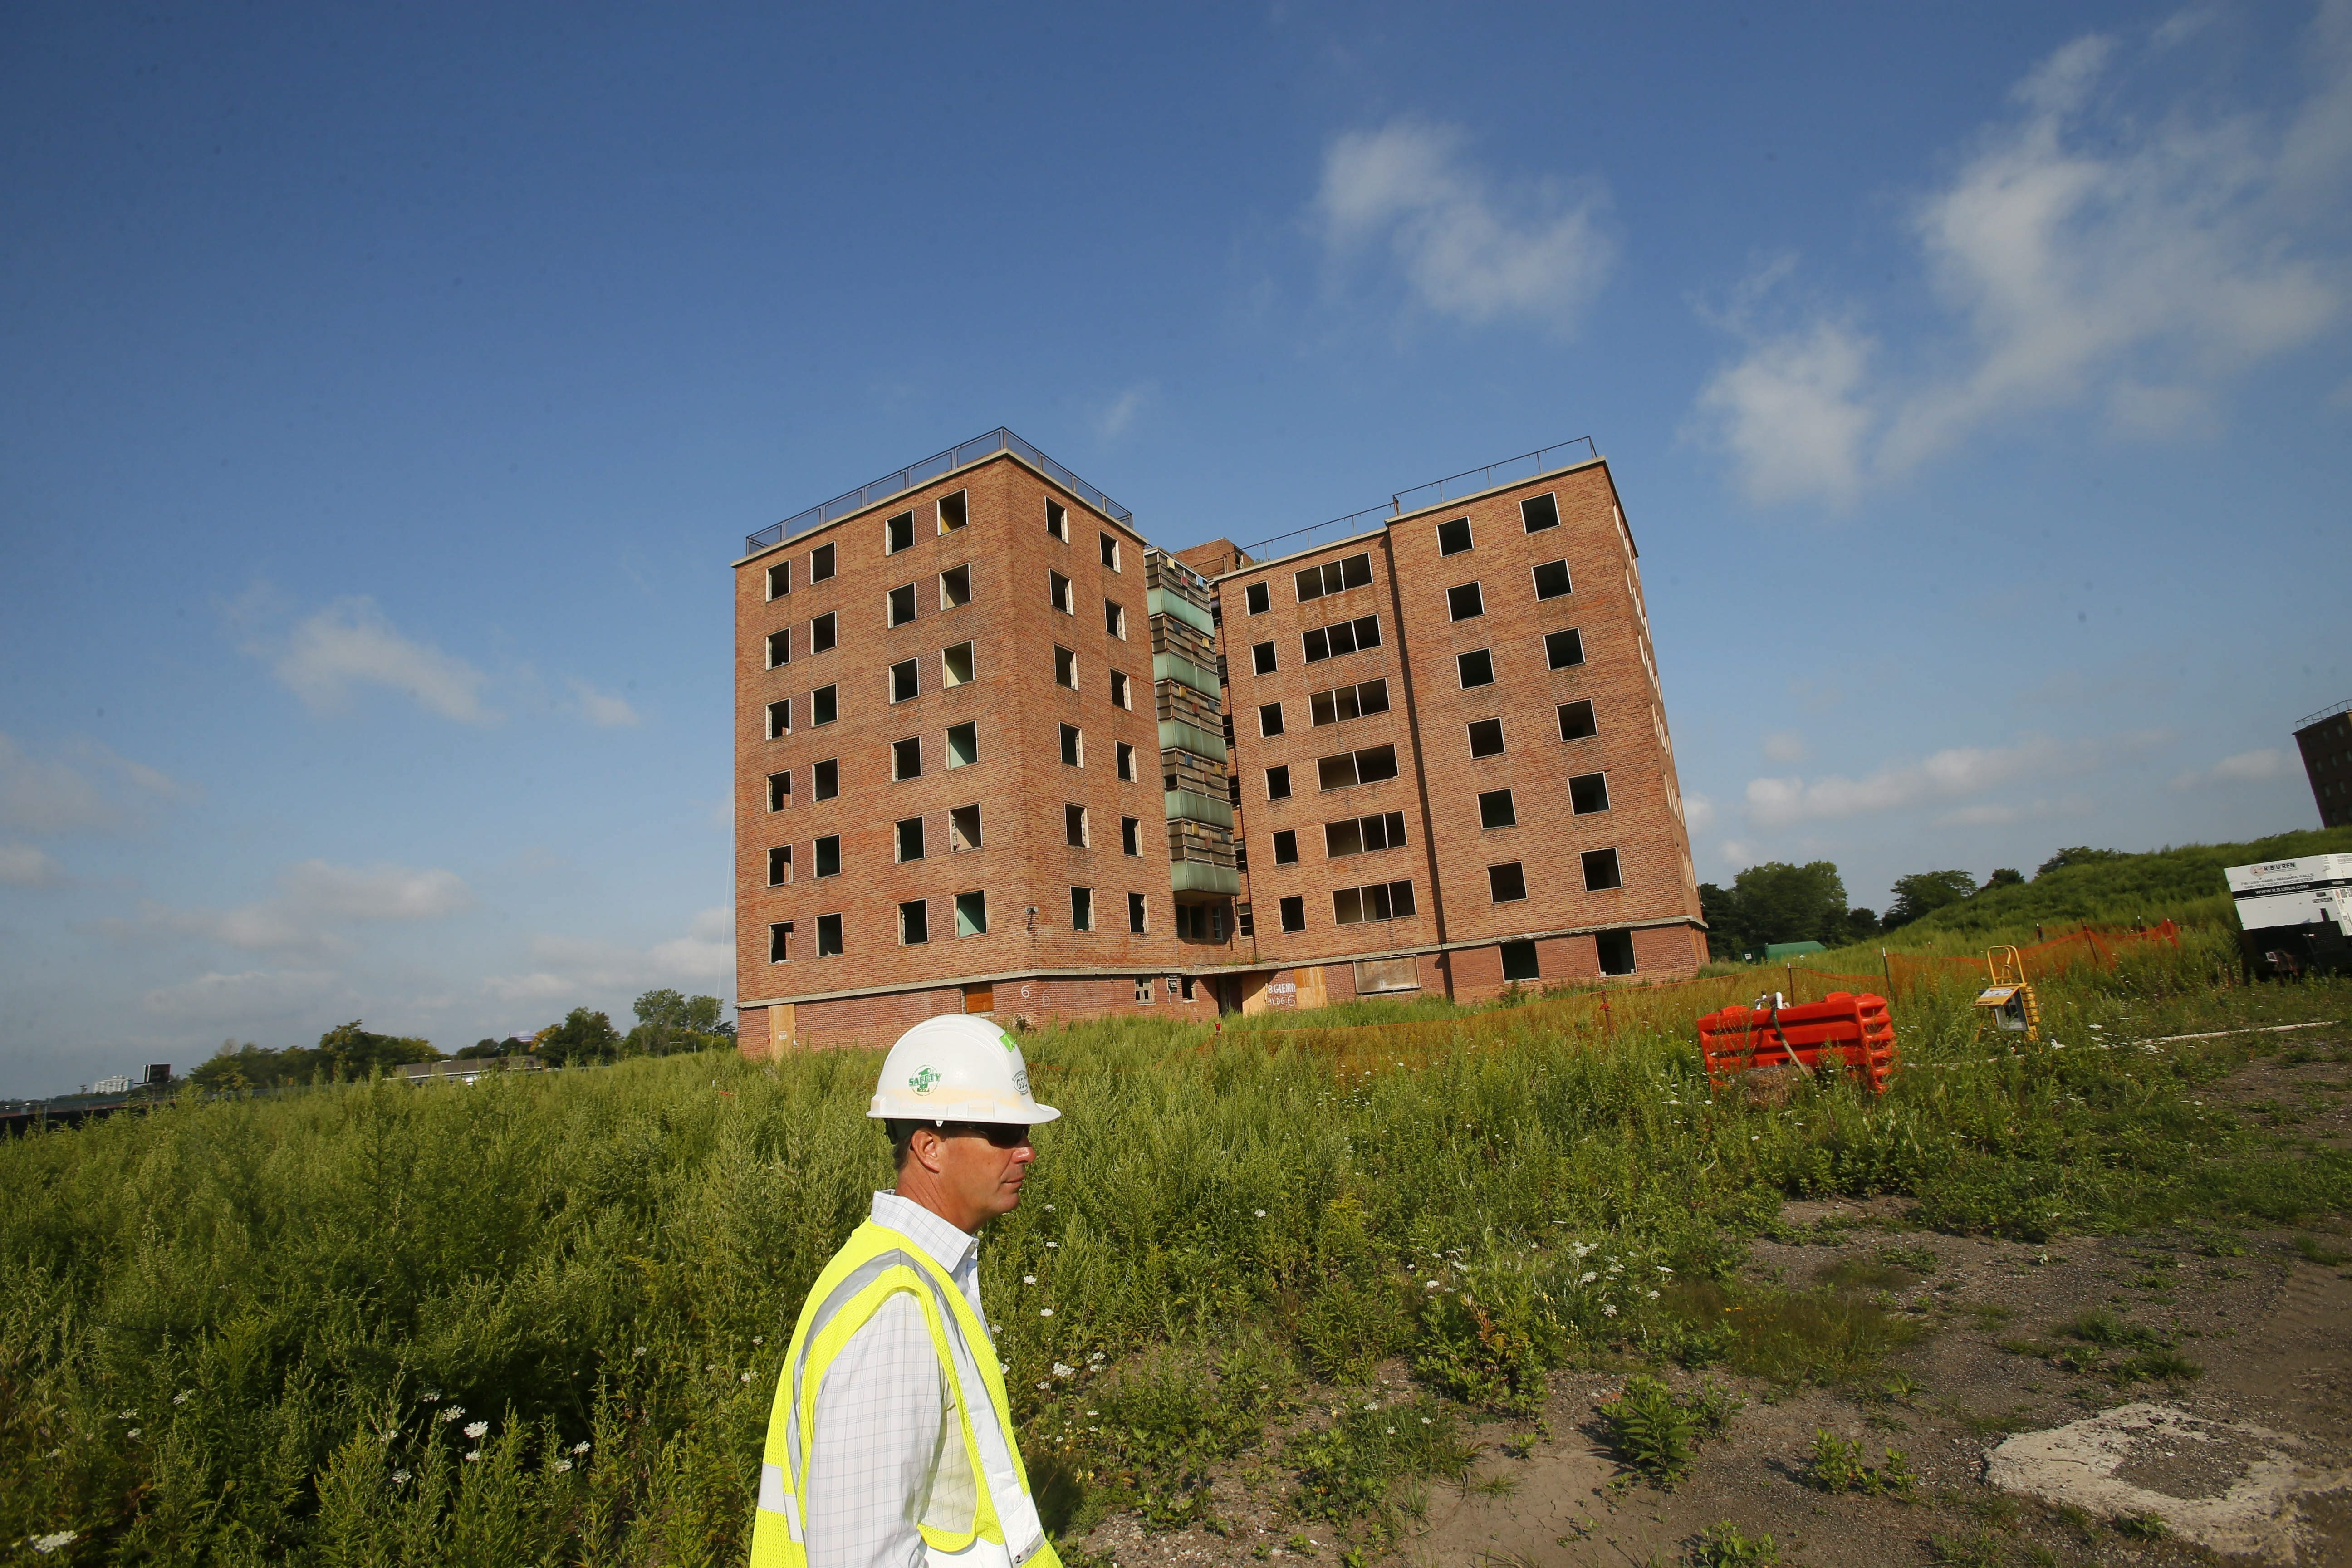 The former Kensington Heights housing project, pictured here in 2013. (Derek Gee/Buffalo News)